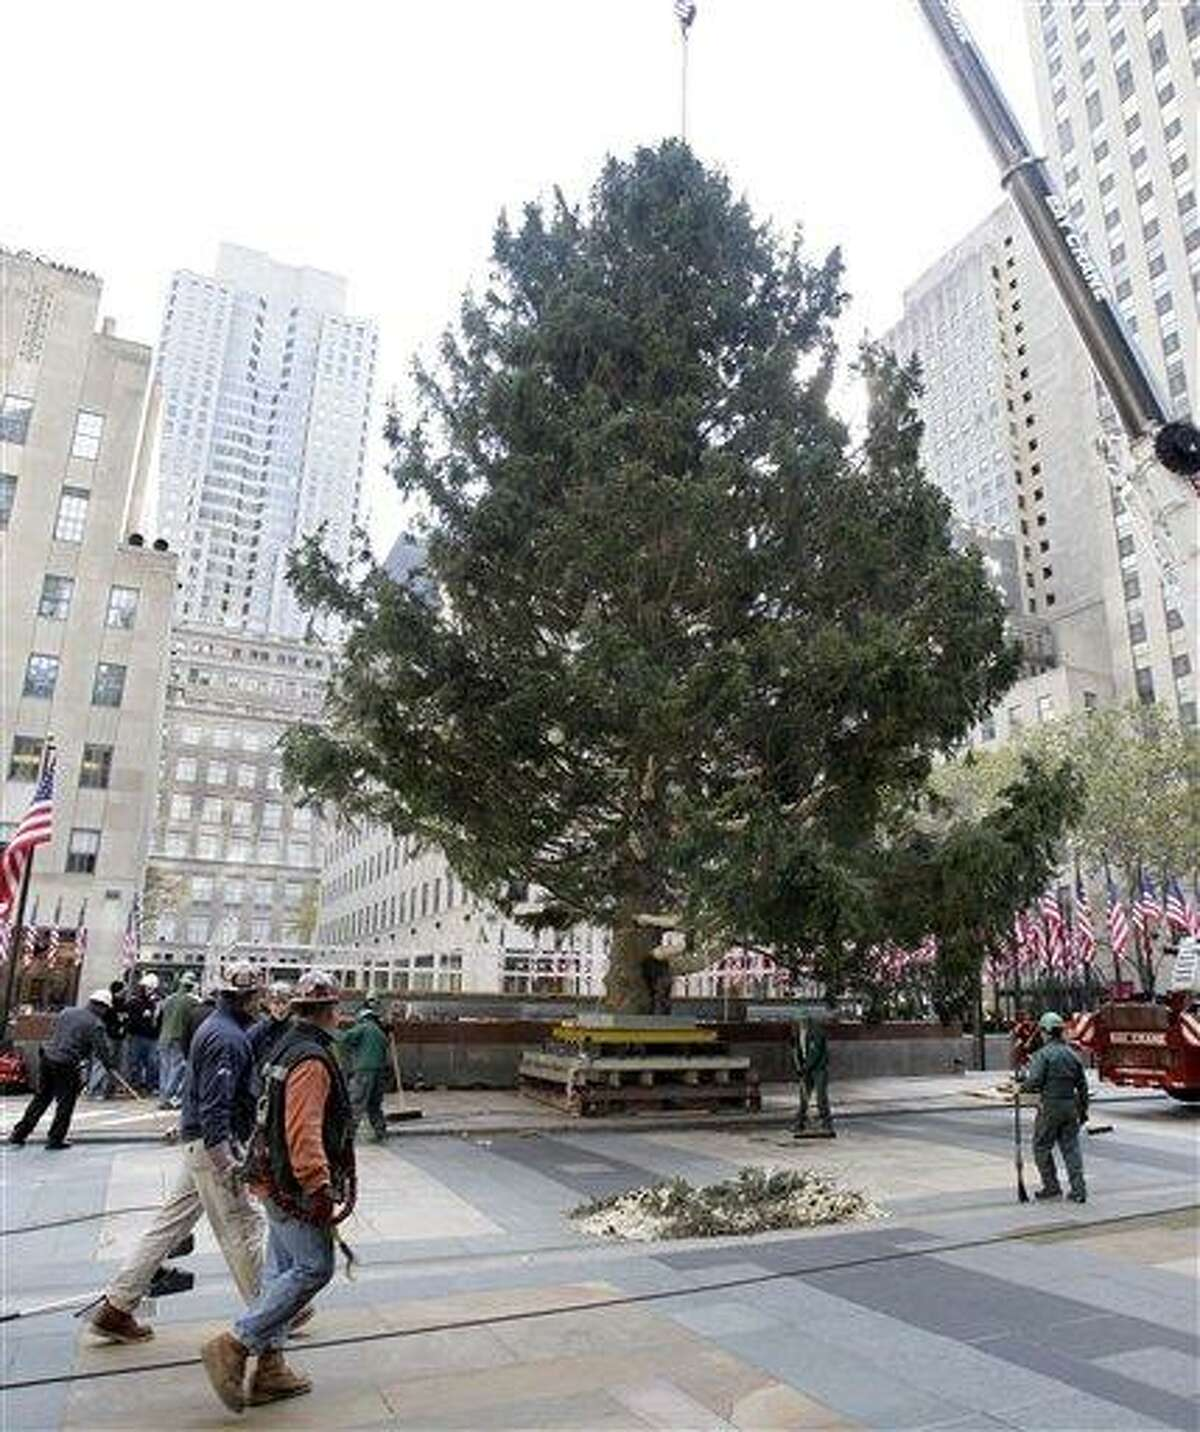 Workers position the annual Rockefeller Center Christmas tree, in New York, Friday, Nov. 11, 2011. The 74-foot Norway Spruce, from Mifflinville, Pa. is approximately 75 years old and is scheduled to be illuminated Nov. 30. (AP Photo/Richard Drew)